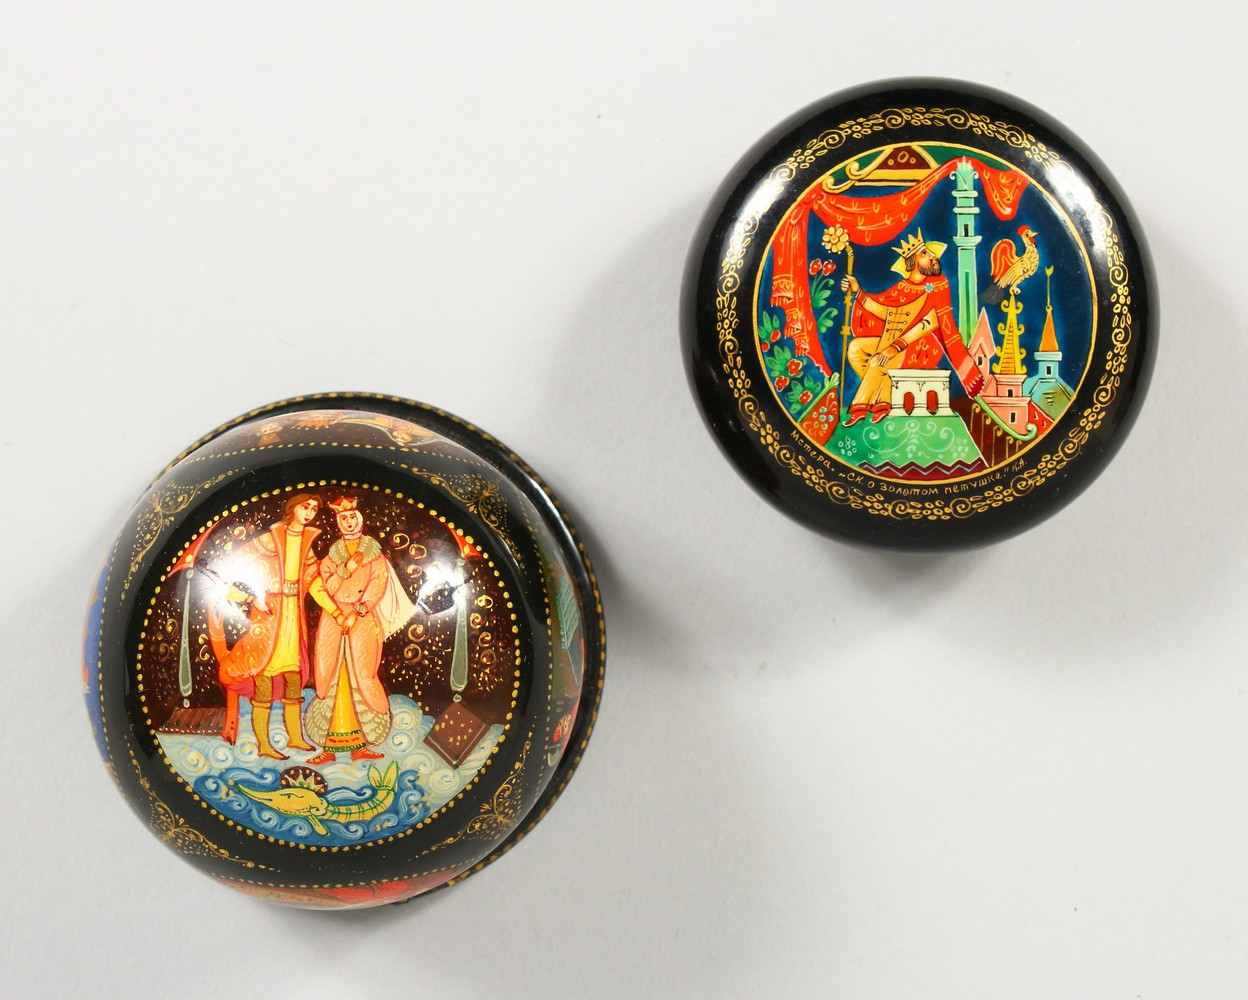 TWO SMALL RUSSIAN CIRCULAR BLACK PAPIER MACHE BOXES AND COVERS. 2.5ins diameter.